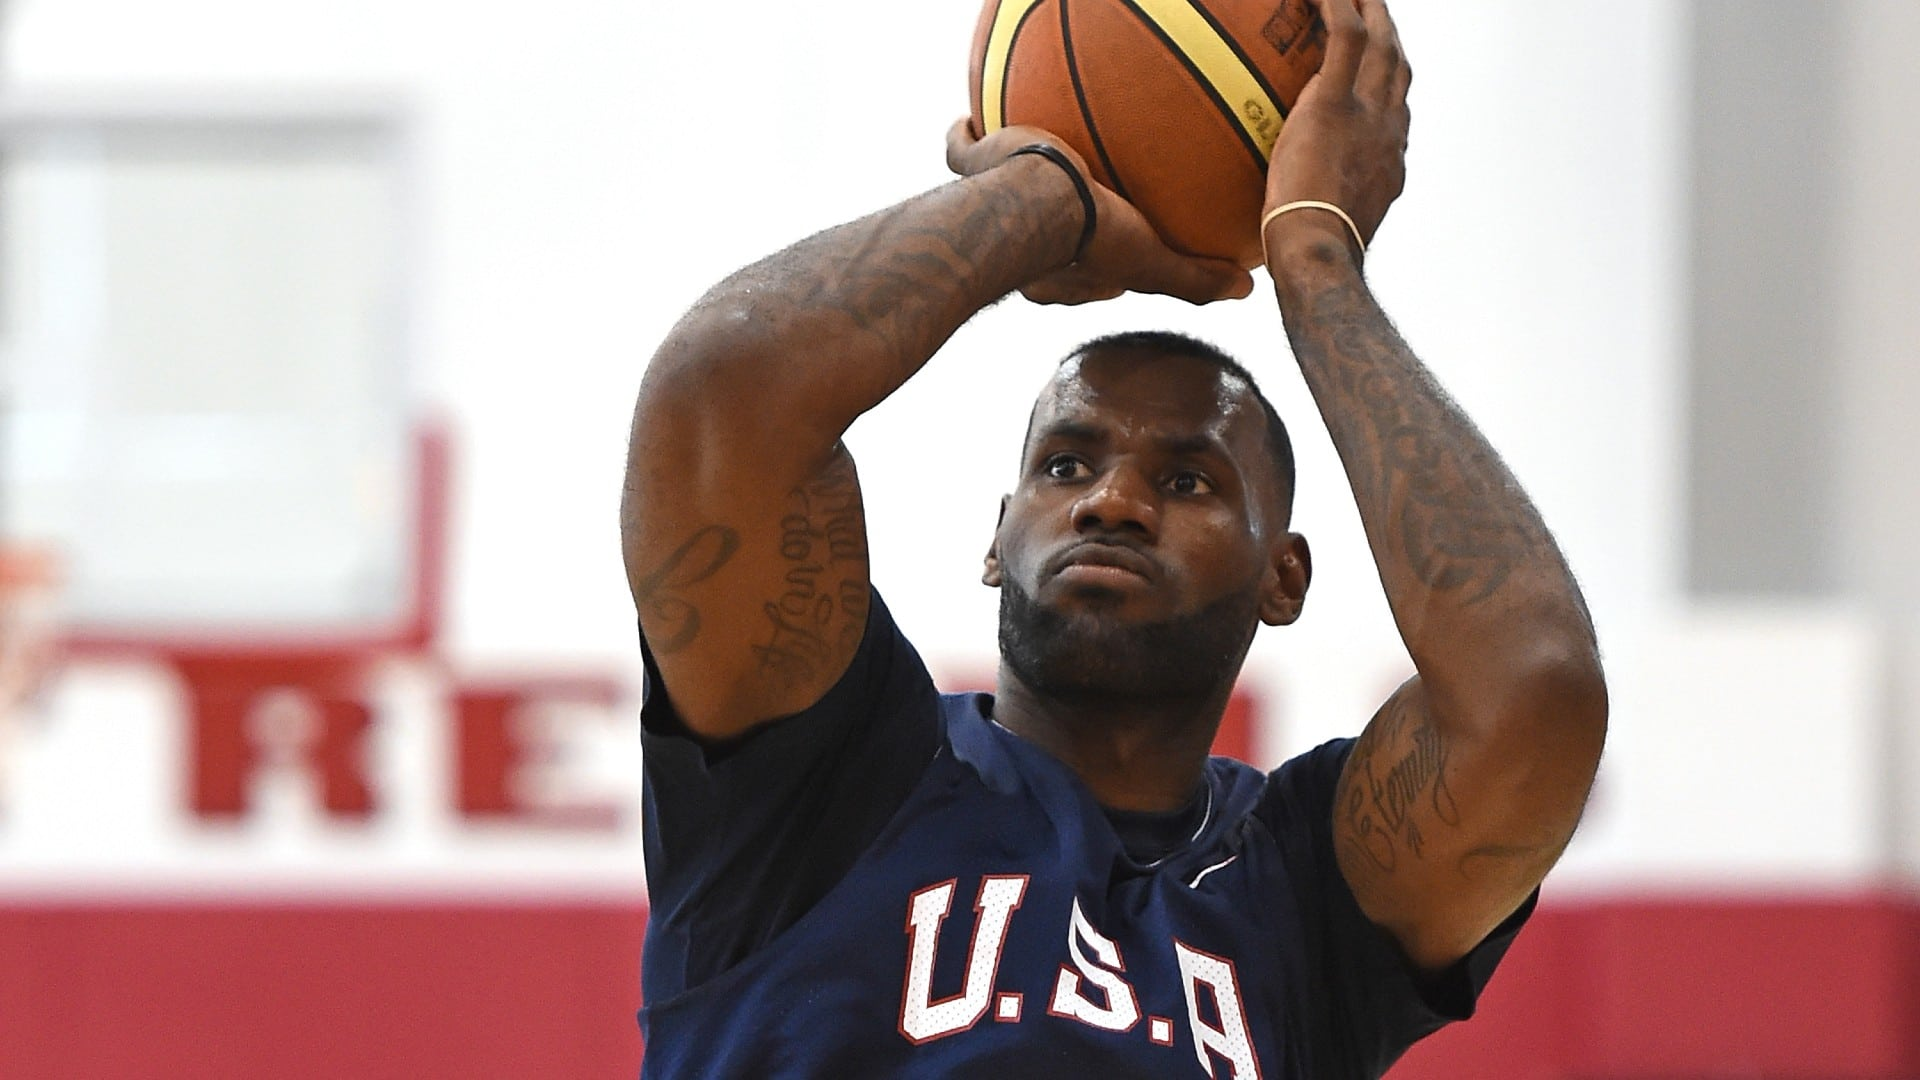 usa-olympic-basketball-roster-projections-most-fresh-updates-on-lebron-james-stephen-curry-varied-nba-stars.jpg